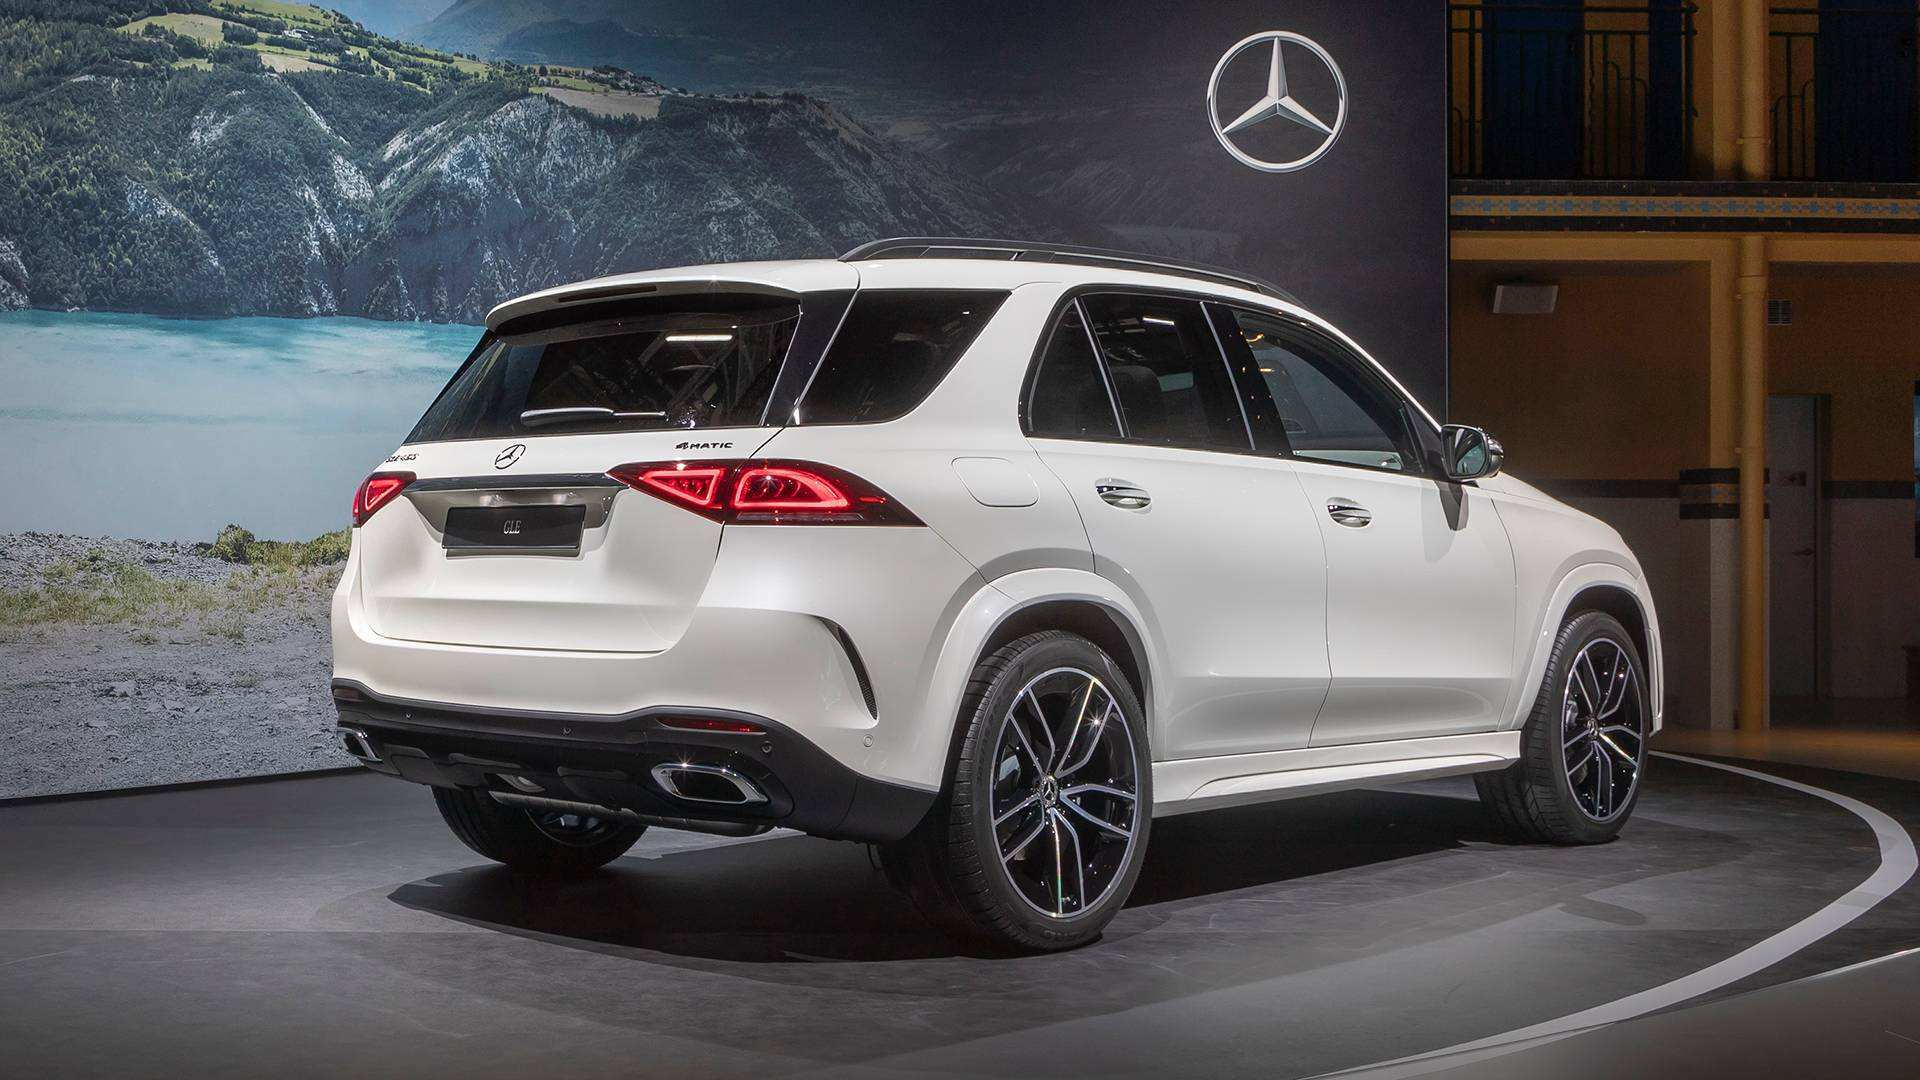 42 New Mercedes Gle 2020 Overview for Mercedes Gle 2020